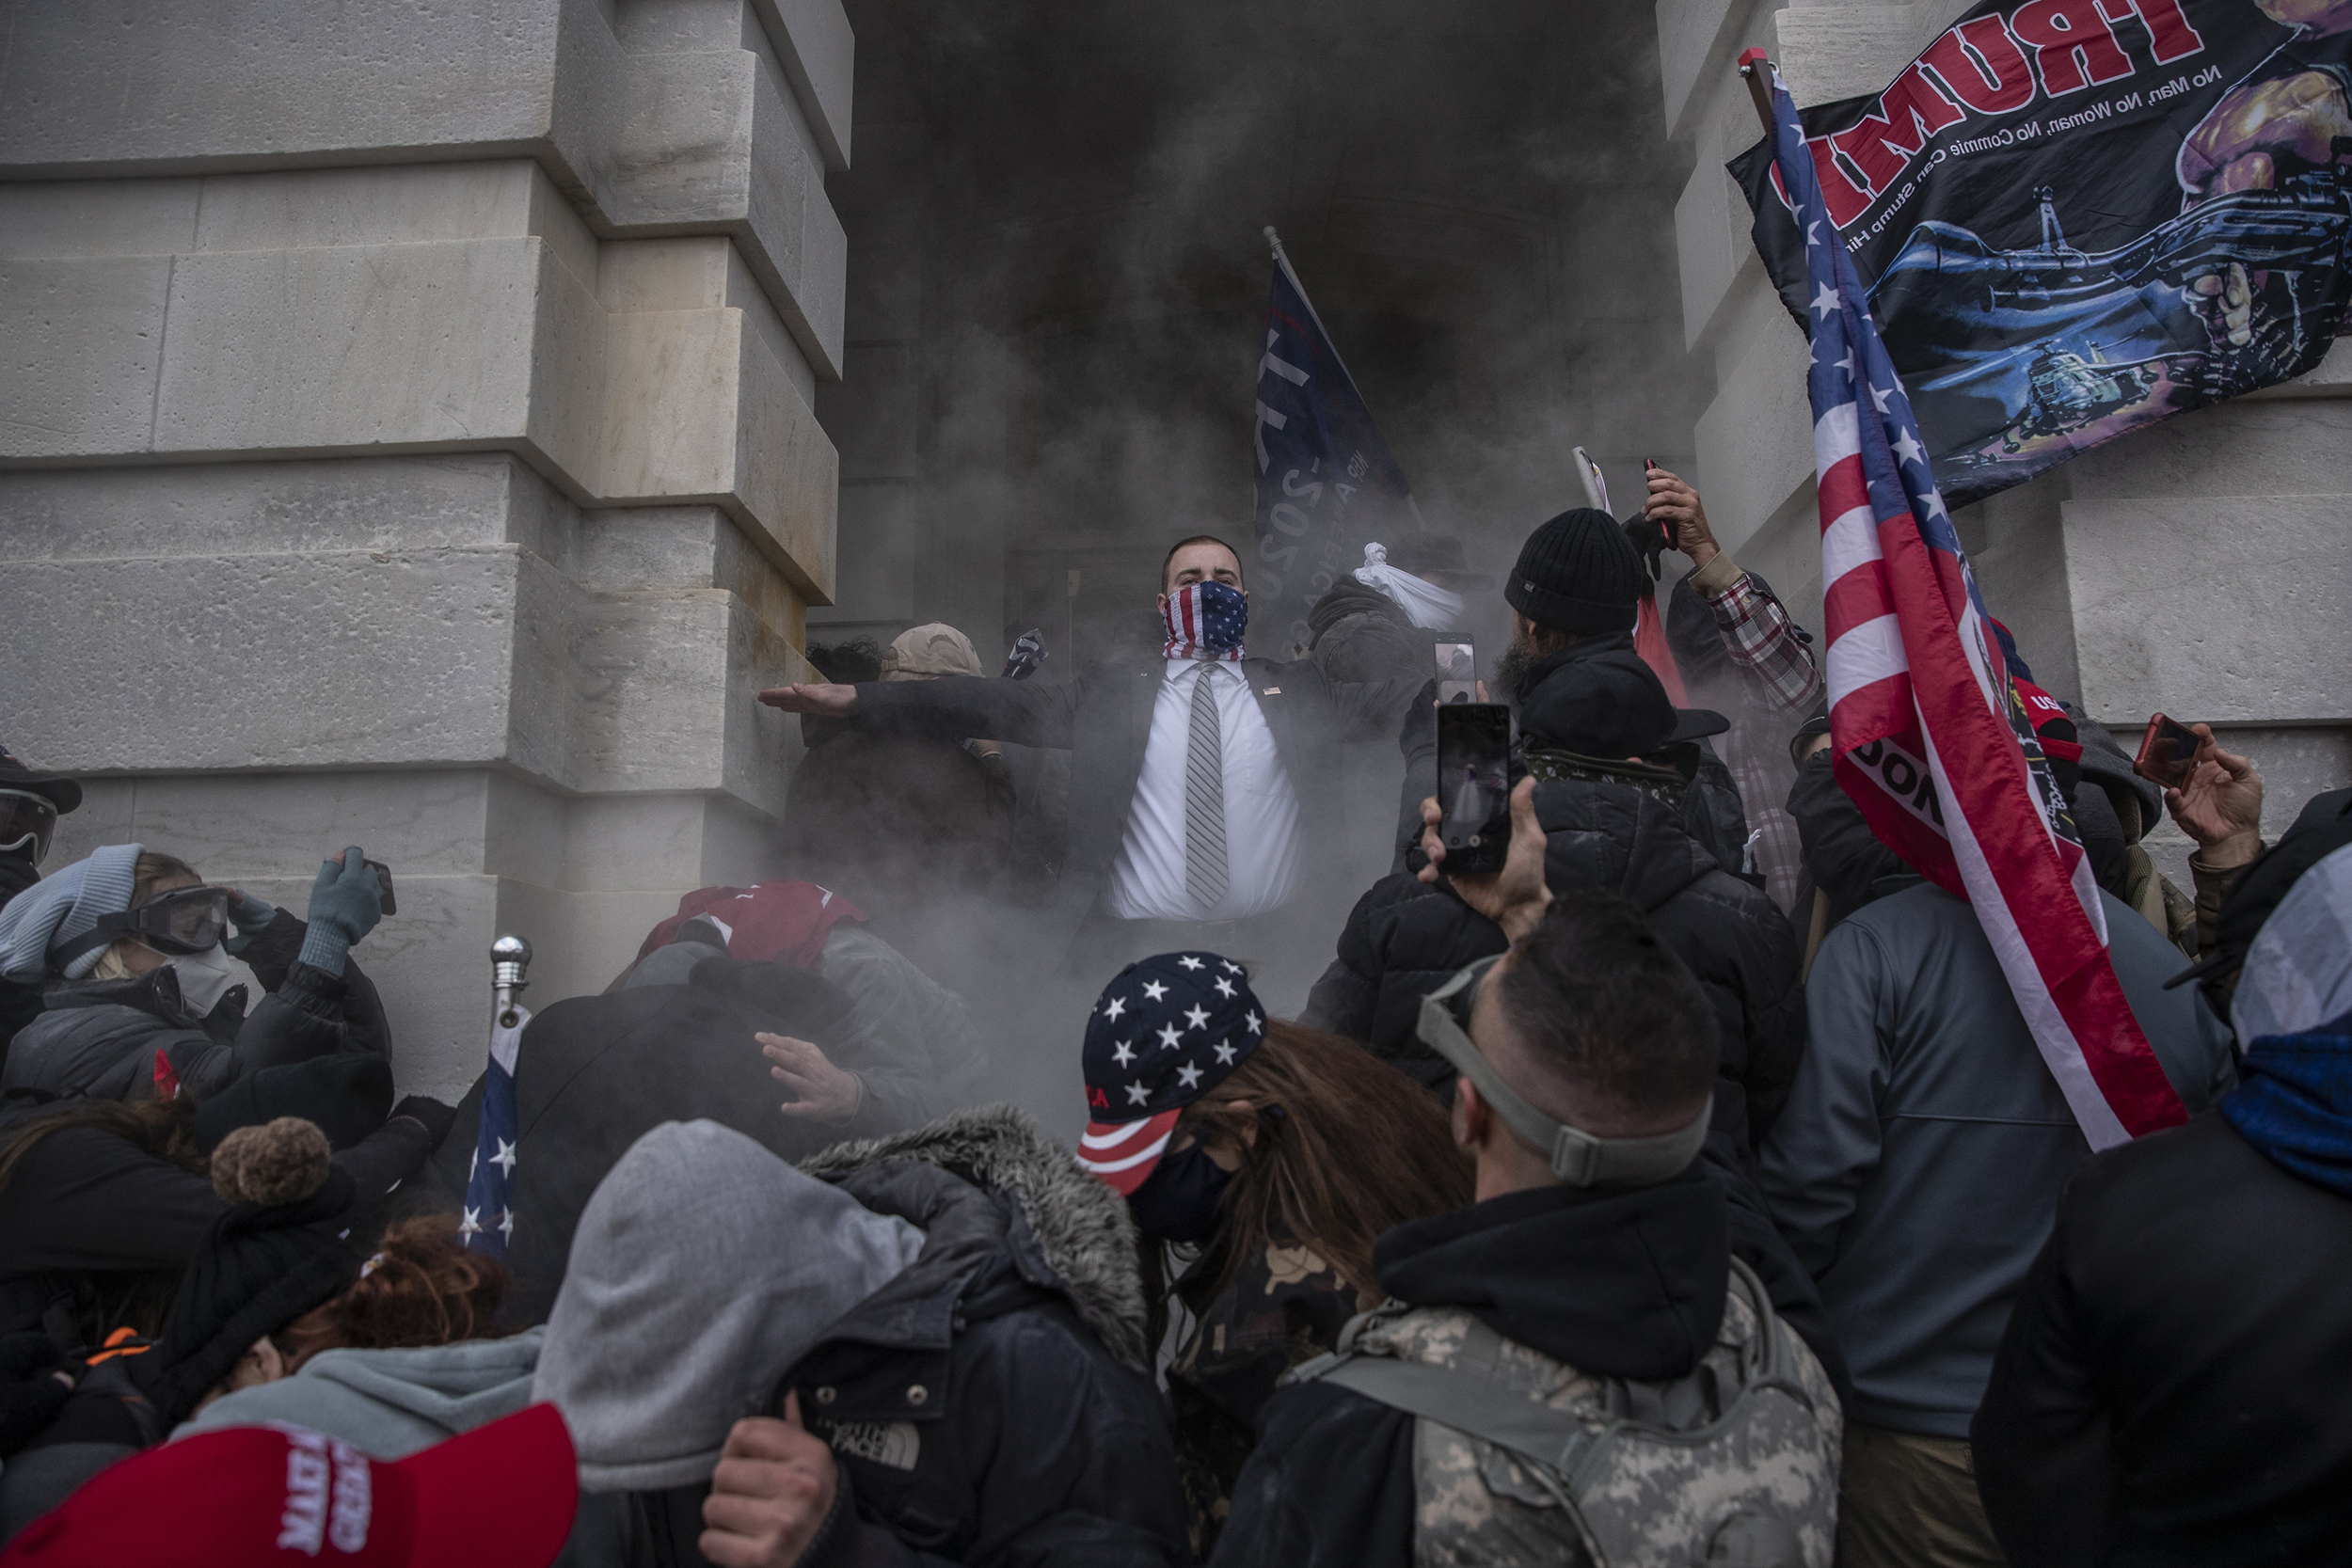 Trump's GOP is one choice away from becoming a full-blown fascist movement